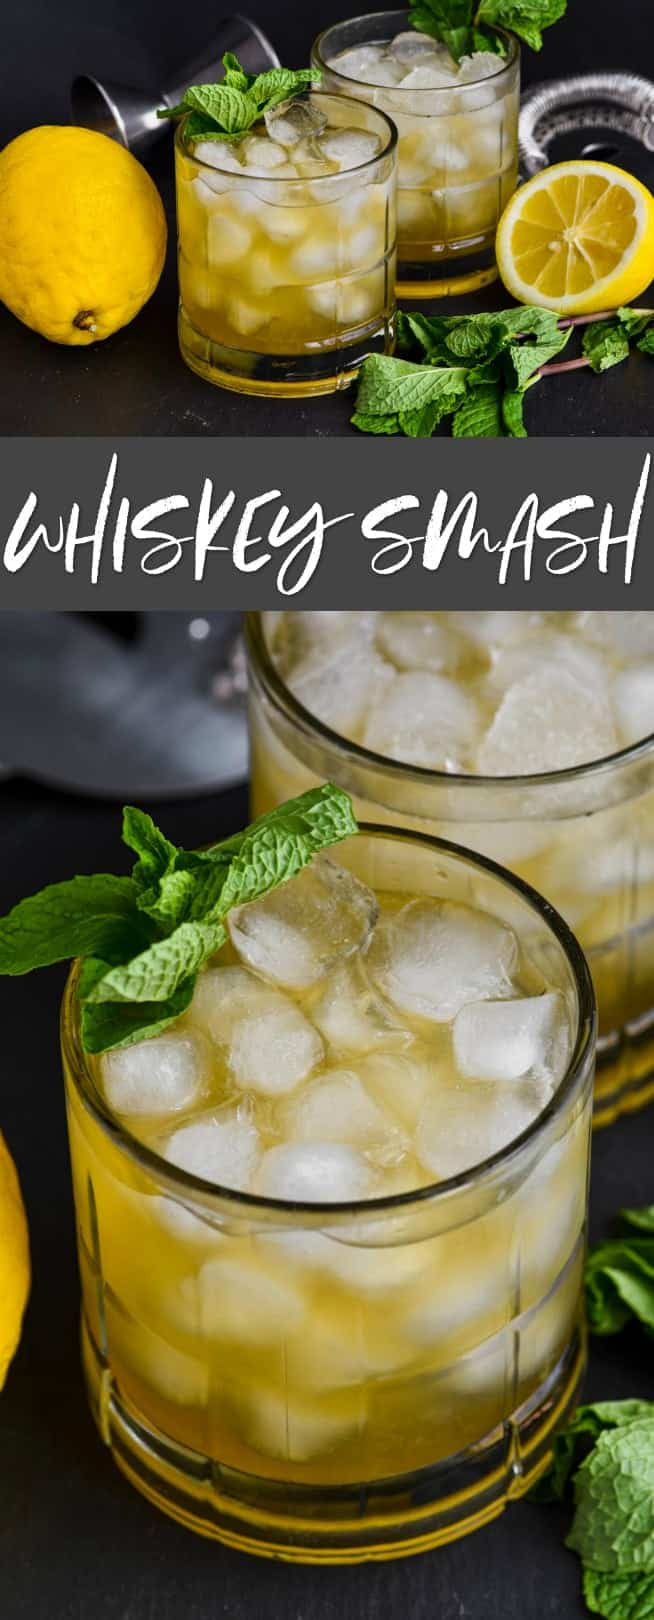 collage of photos of whiskey smash